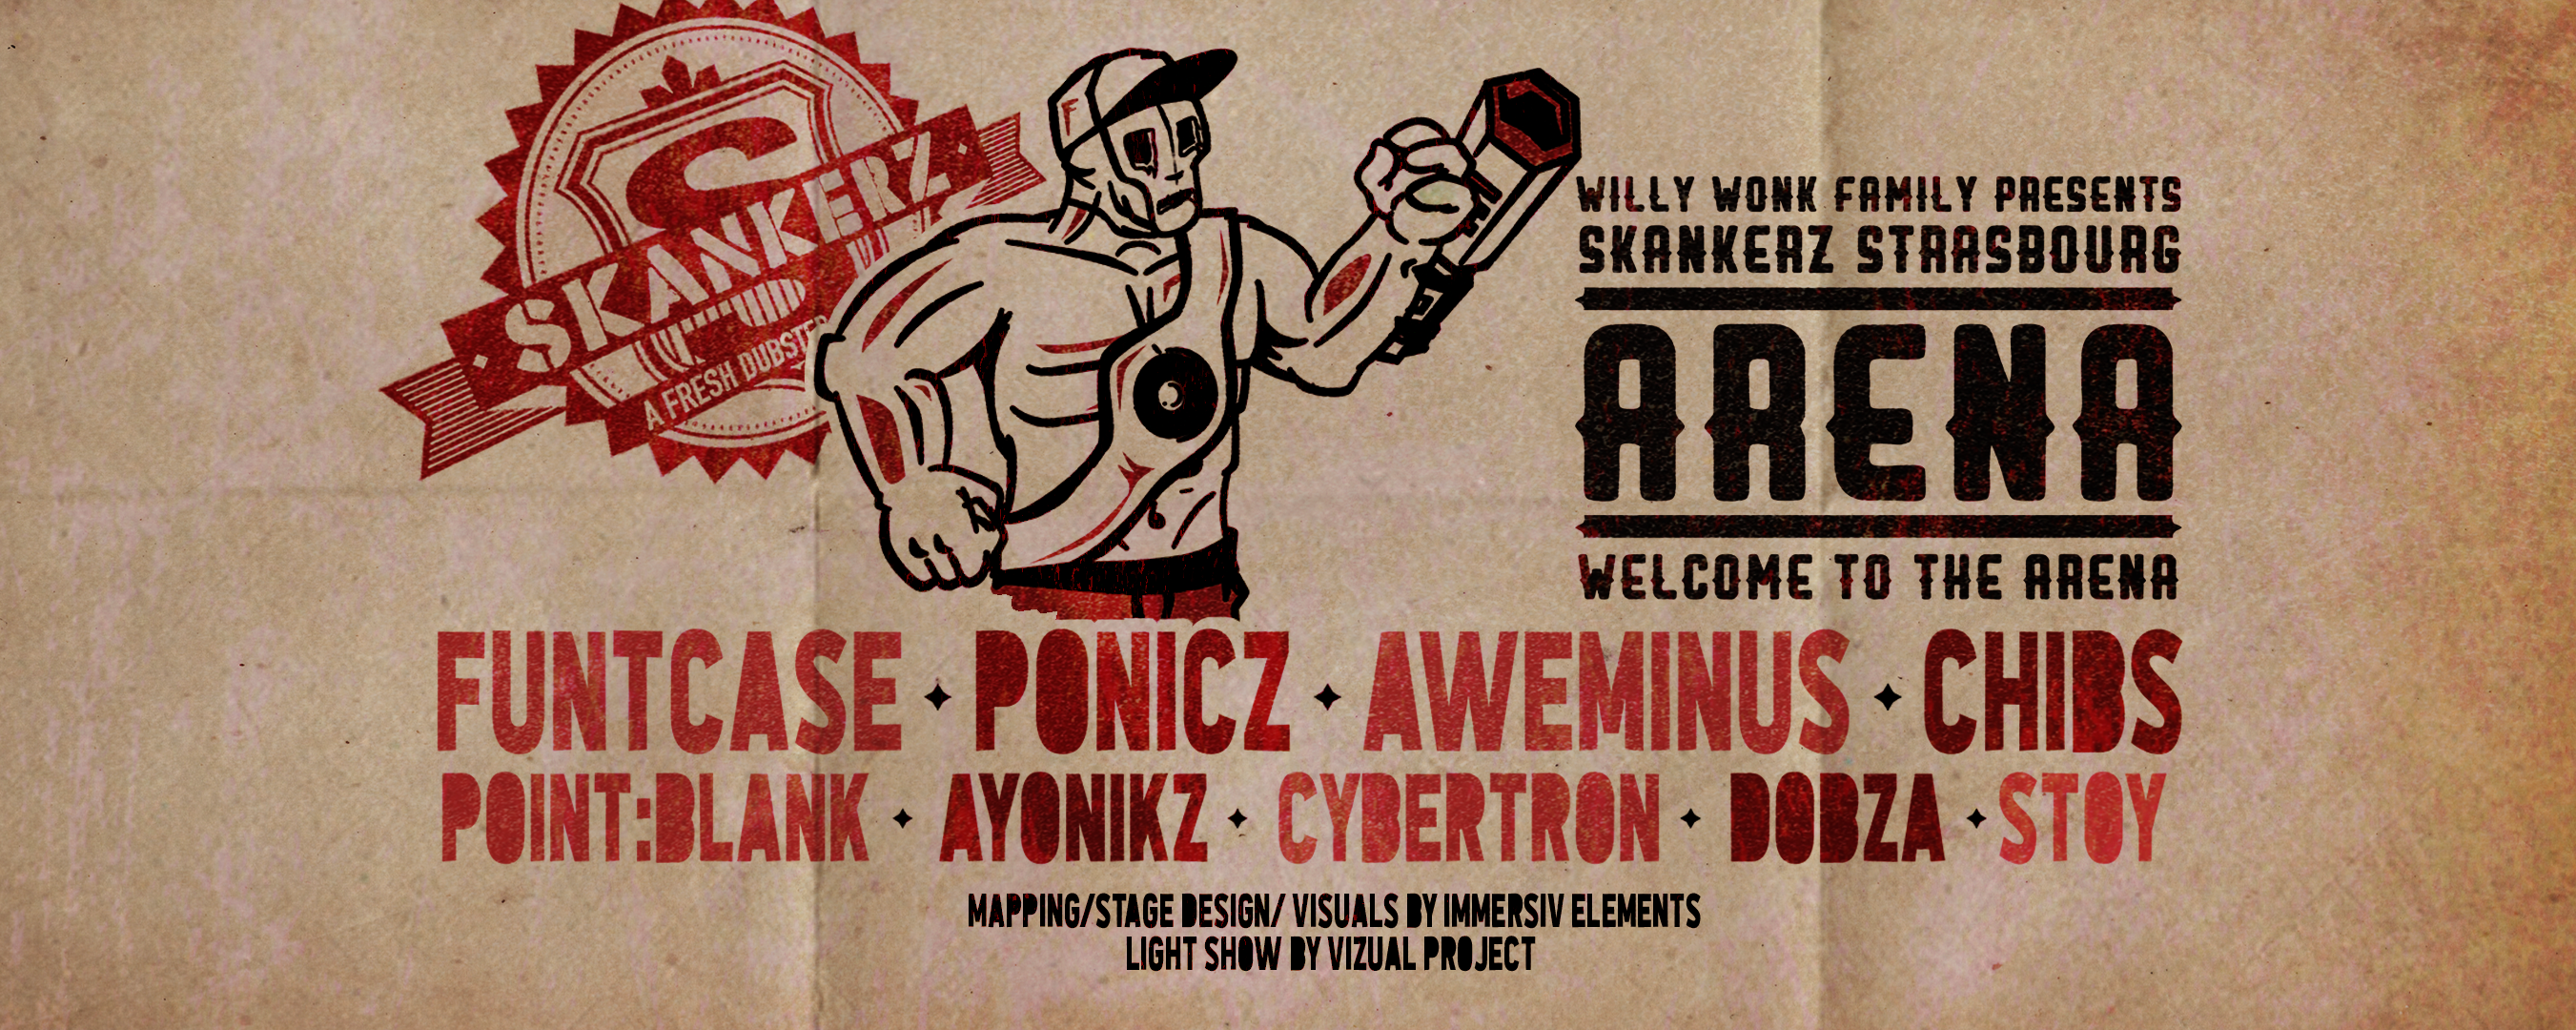 Willy Wonk Family presents Skankerz /Welcome to the Arena